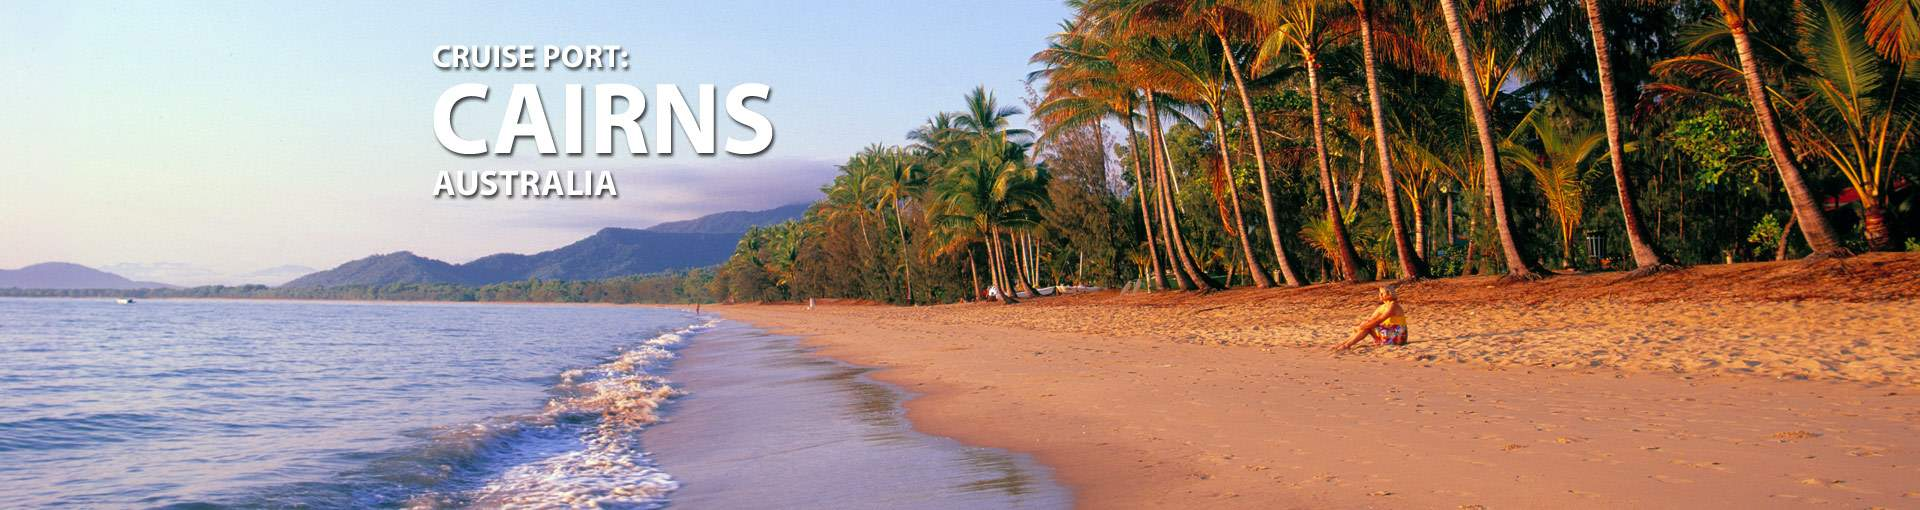 Cruises from Cairns, Australia